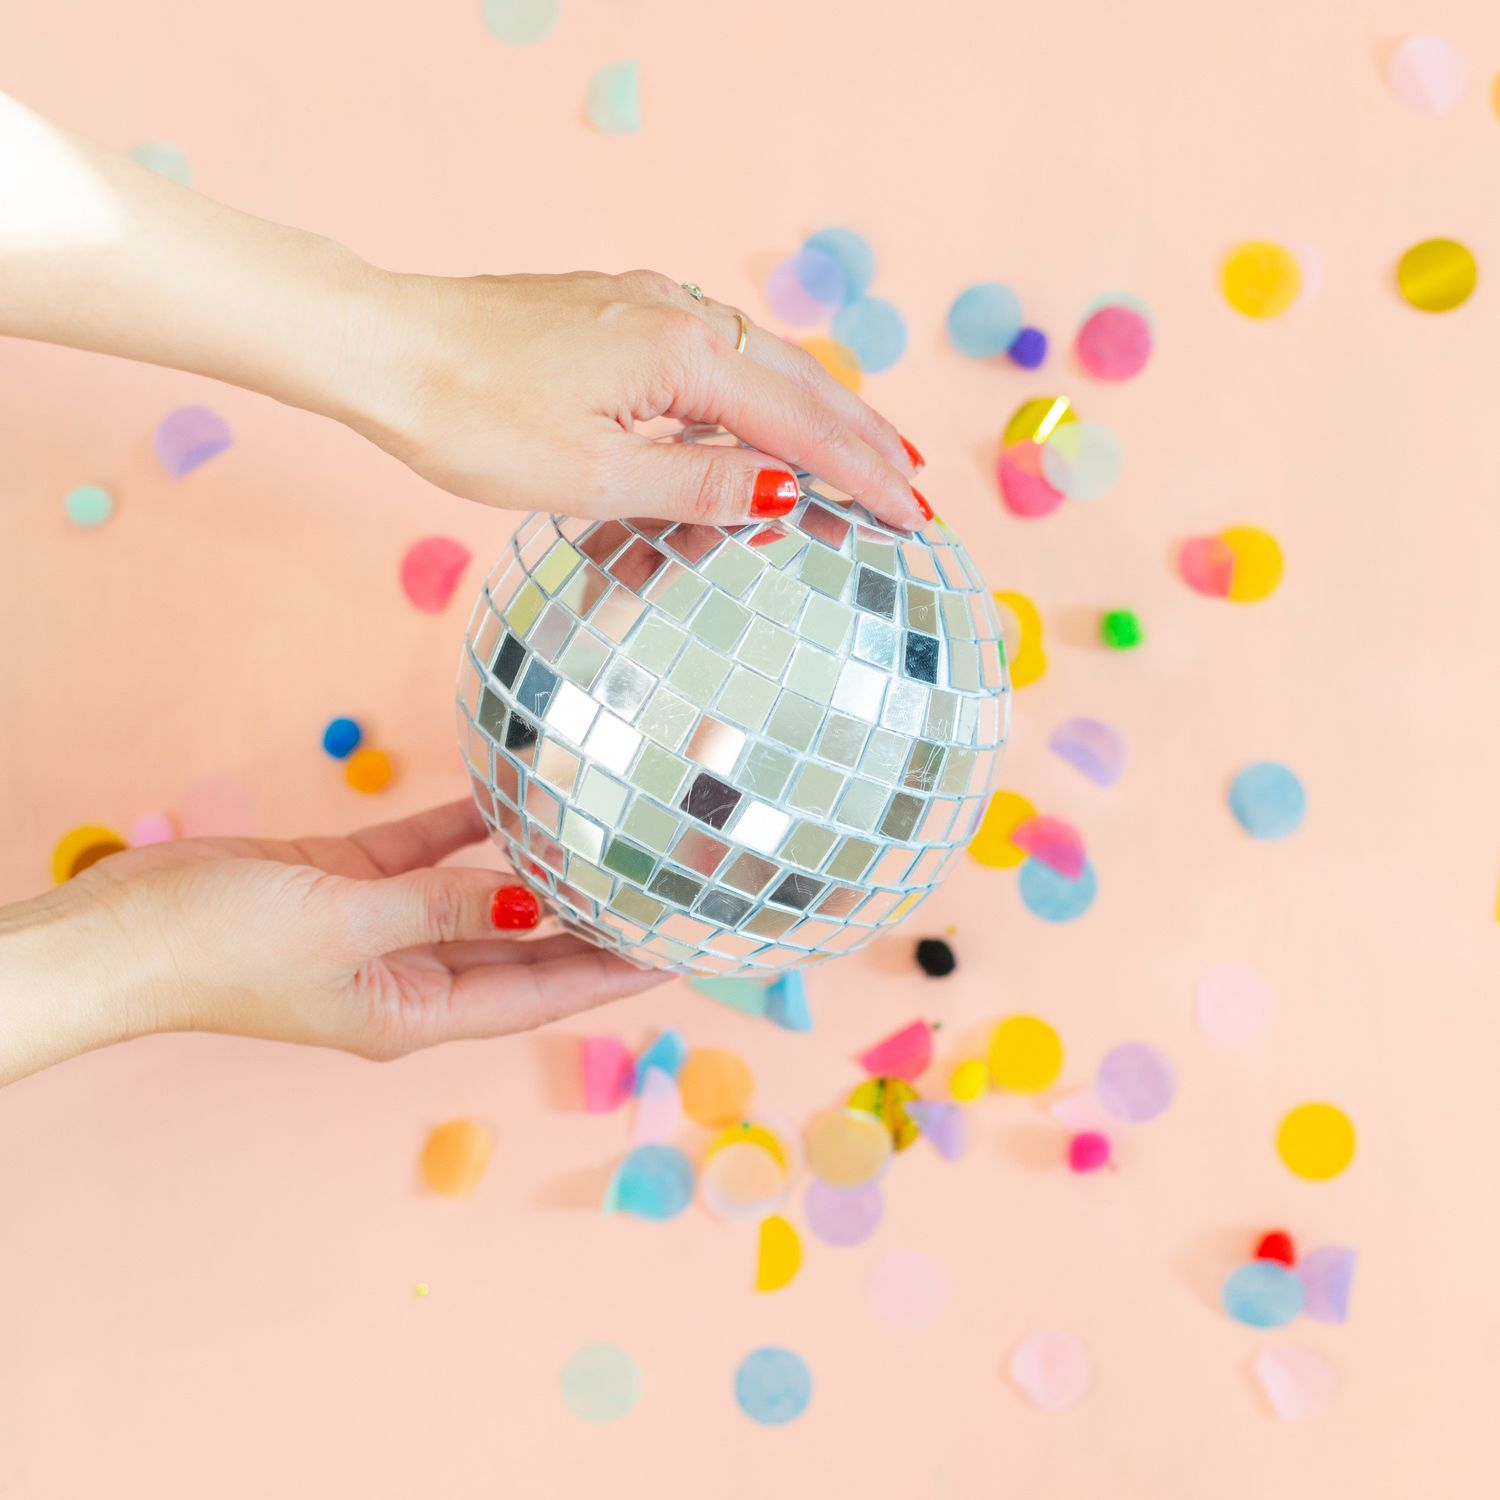 Hands holding a DIY disco ball on a pink background with confetti